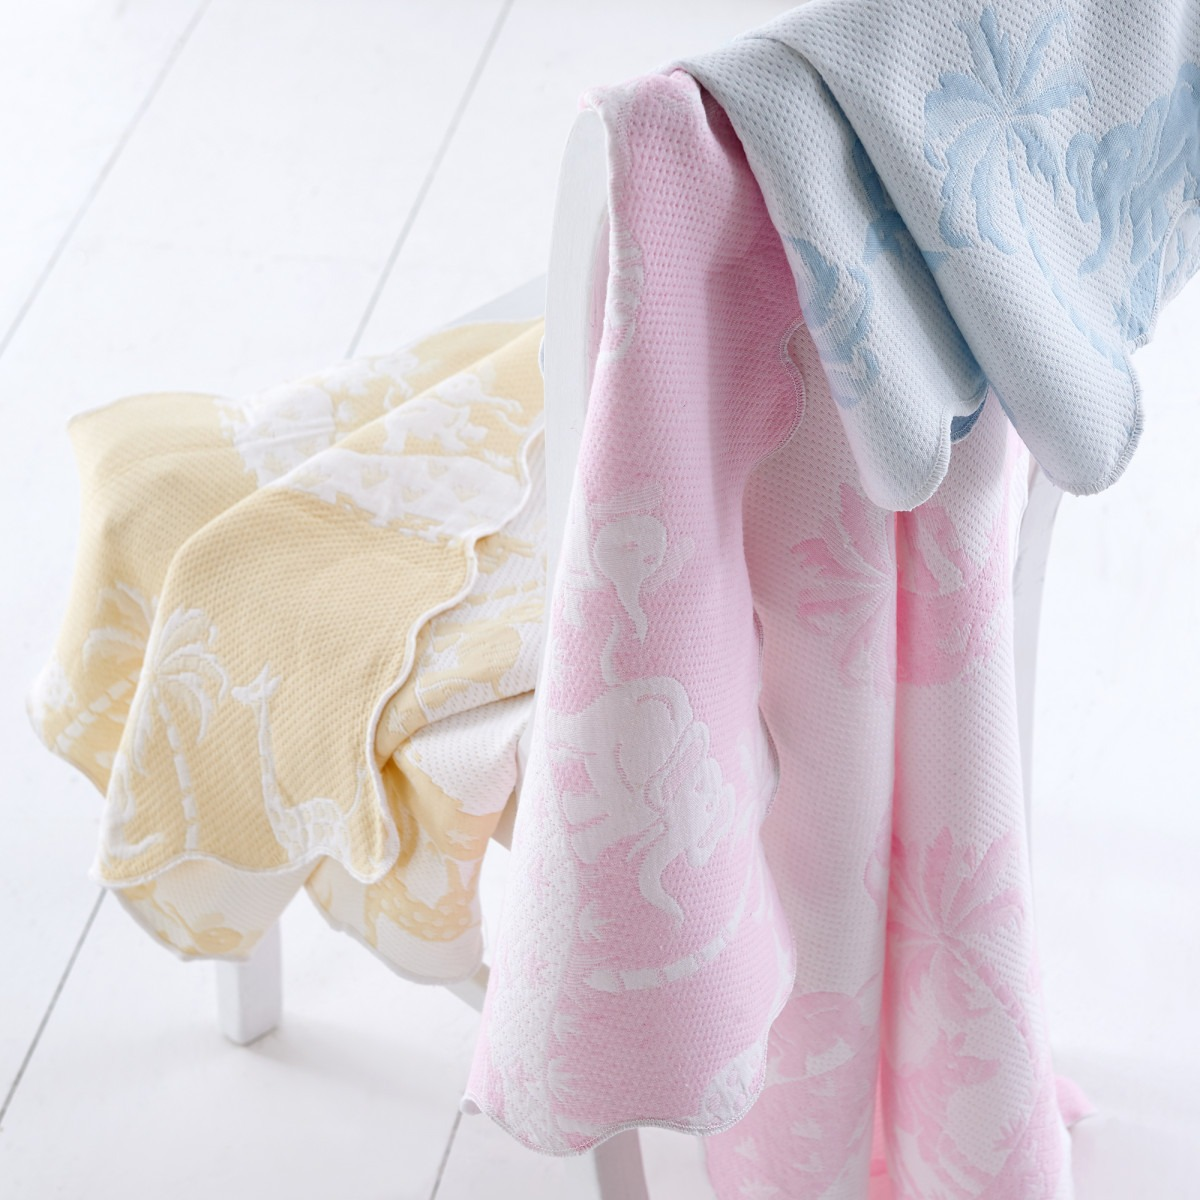 Woven Cotton Cot Covers